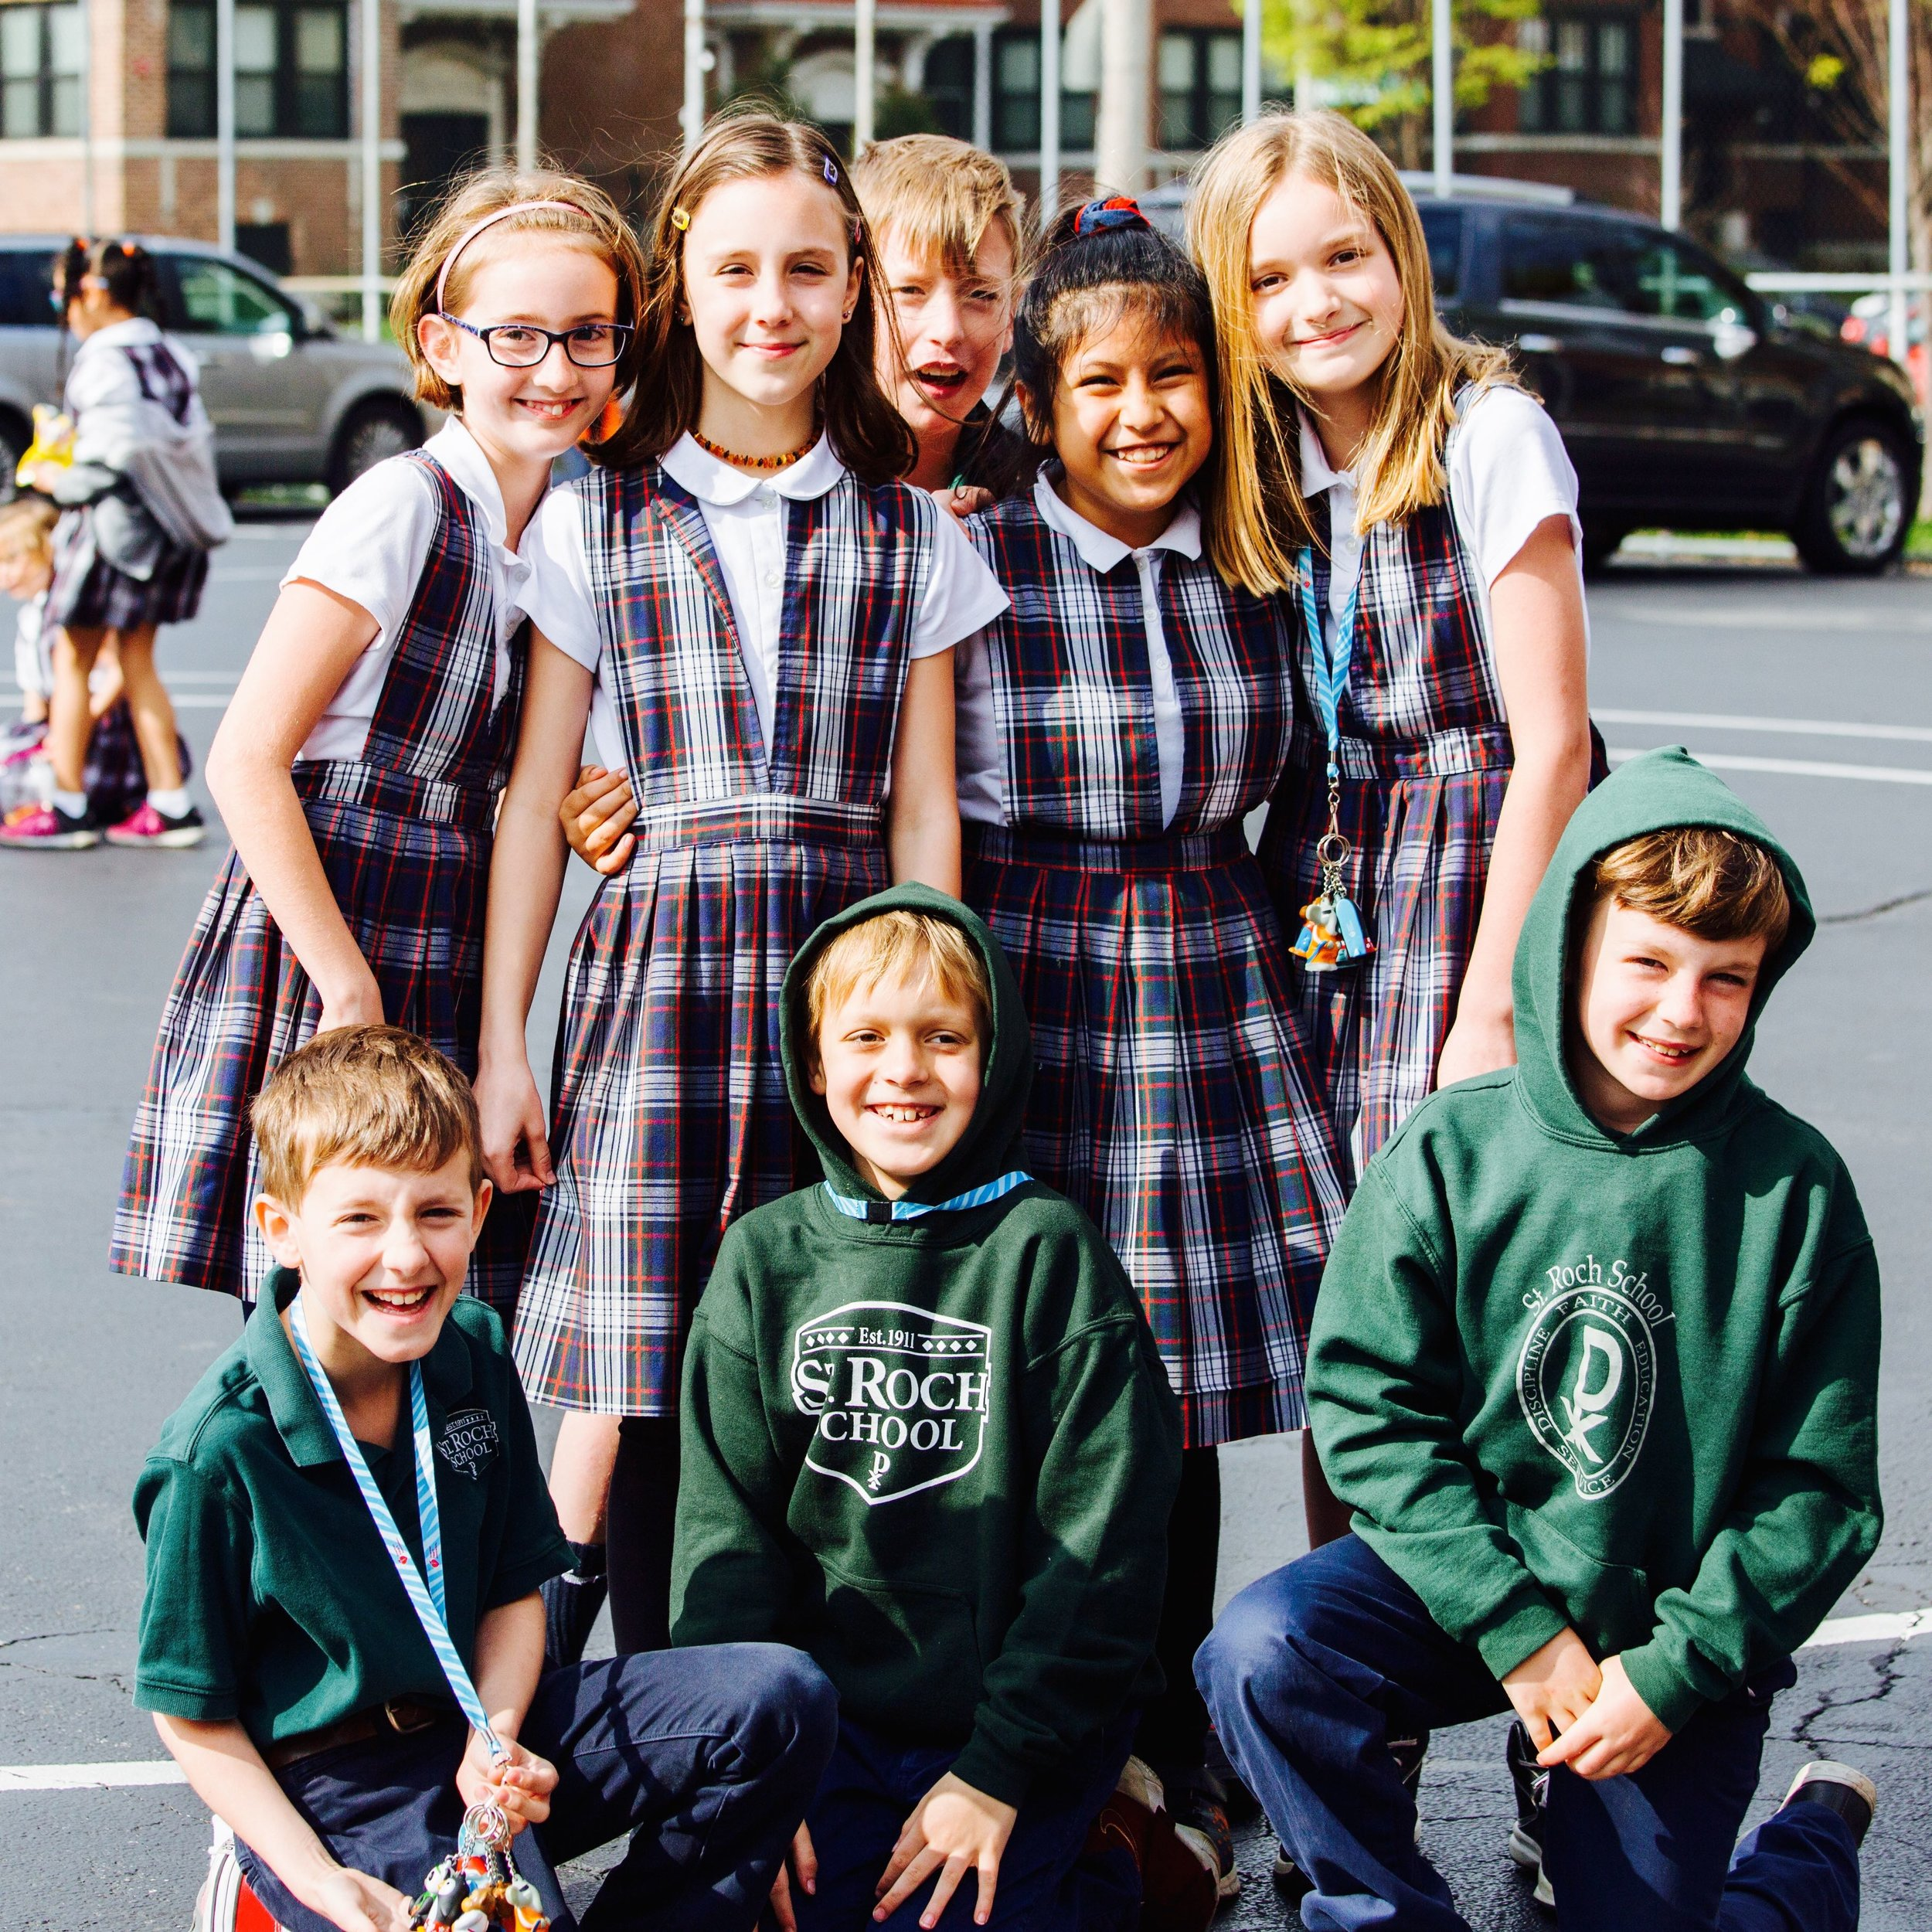 St. Roch School embraces the principles of academic excellence, faith, discipline, and service and offers an affordable education for children in preschool through eighth grades.